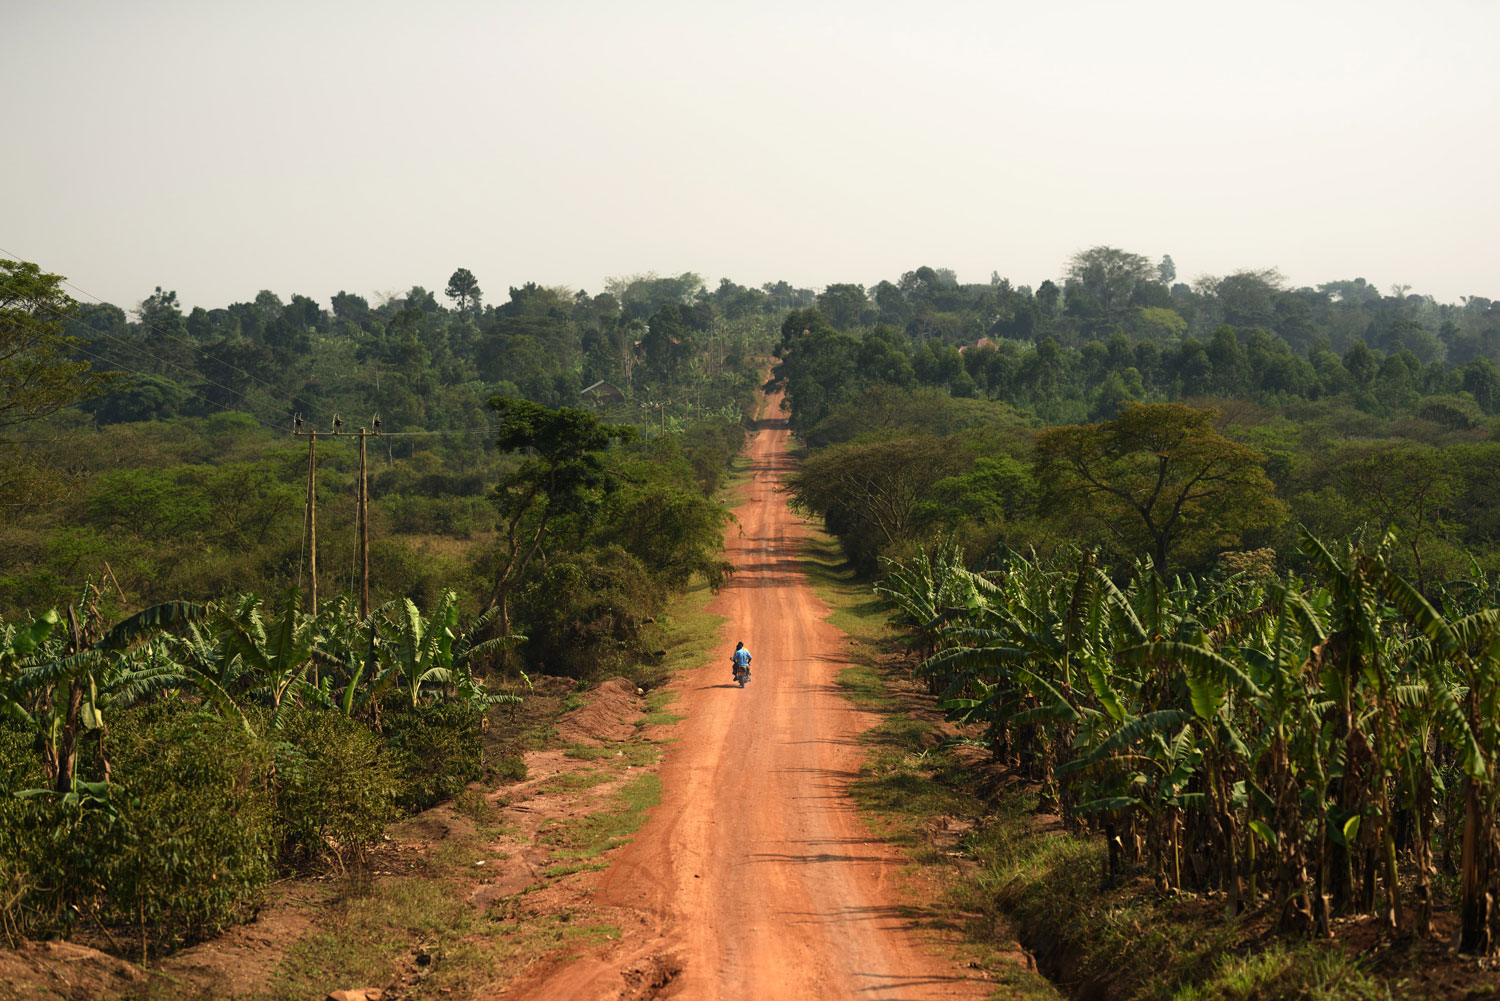 A long road cutting through bright green trees, and a single motorbike driving down the road